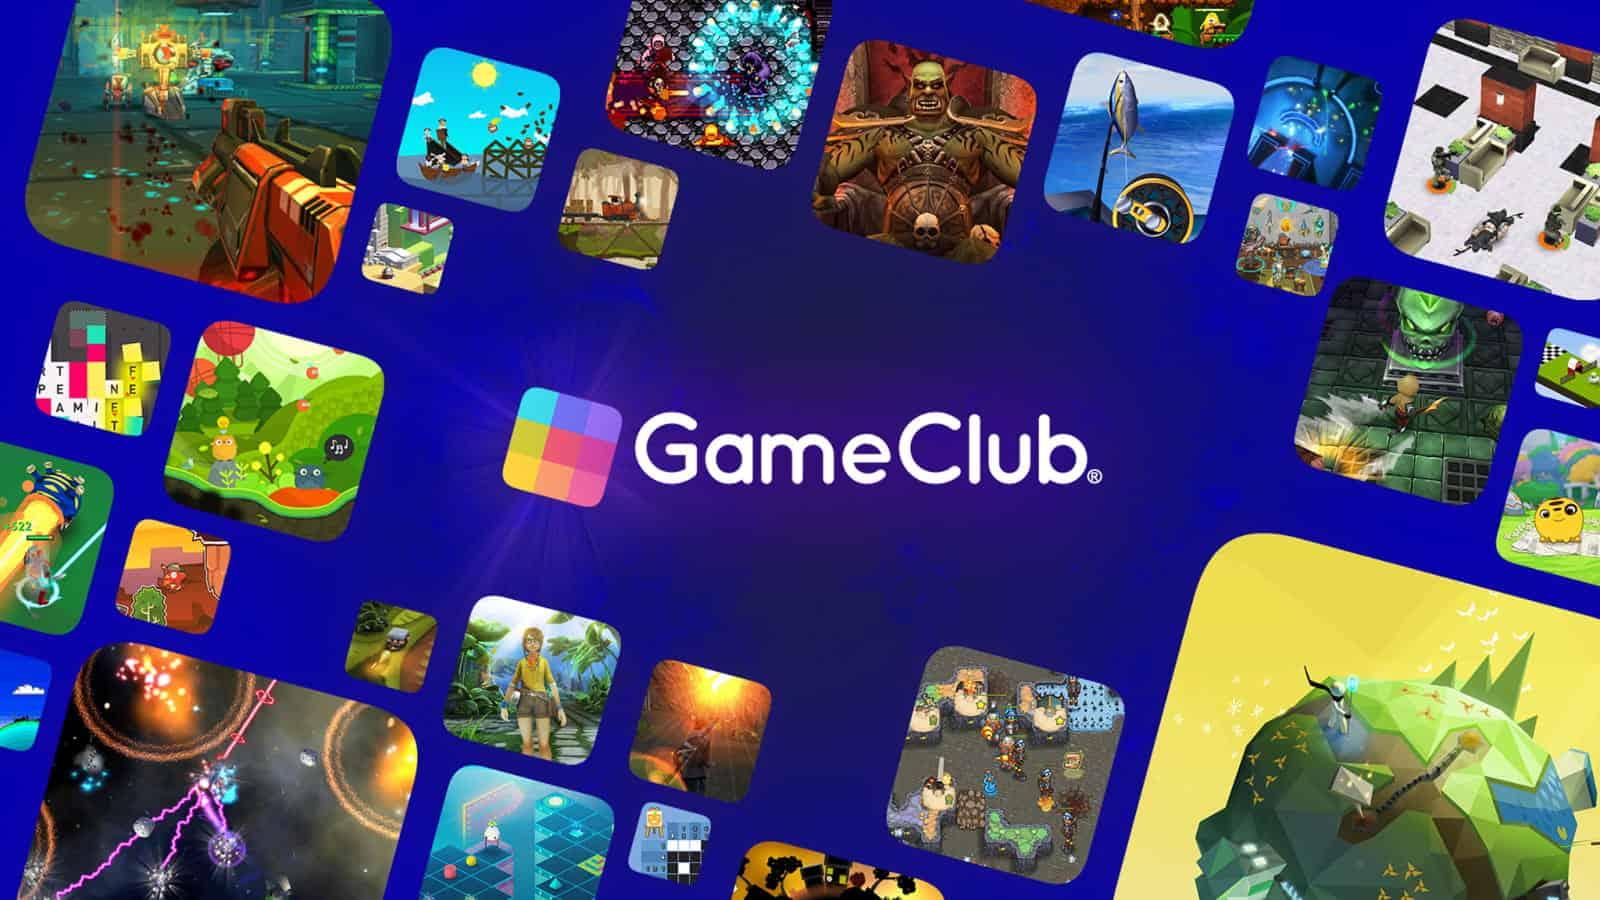 GameClub Service for Android